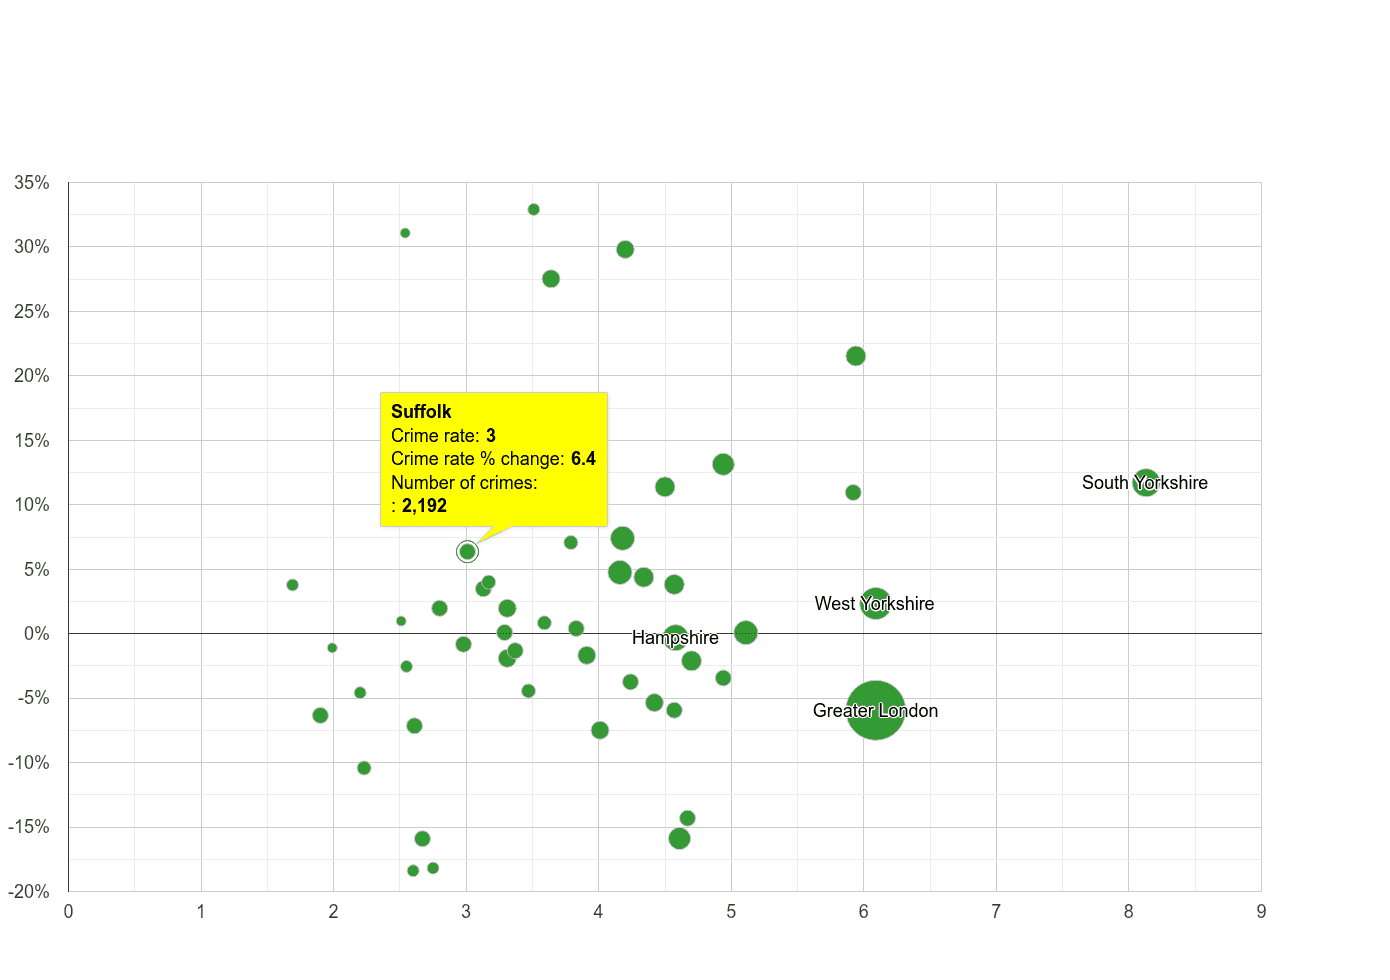 Suffolk burglary crime rate compared to other counties